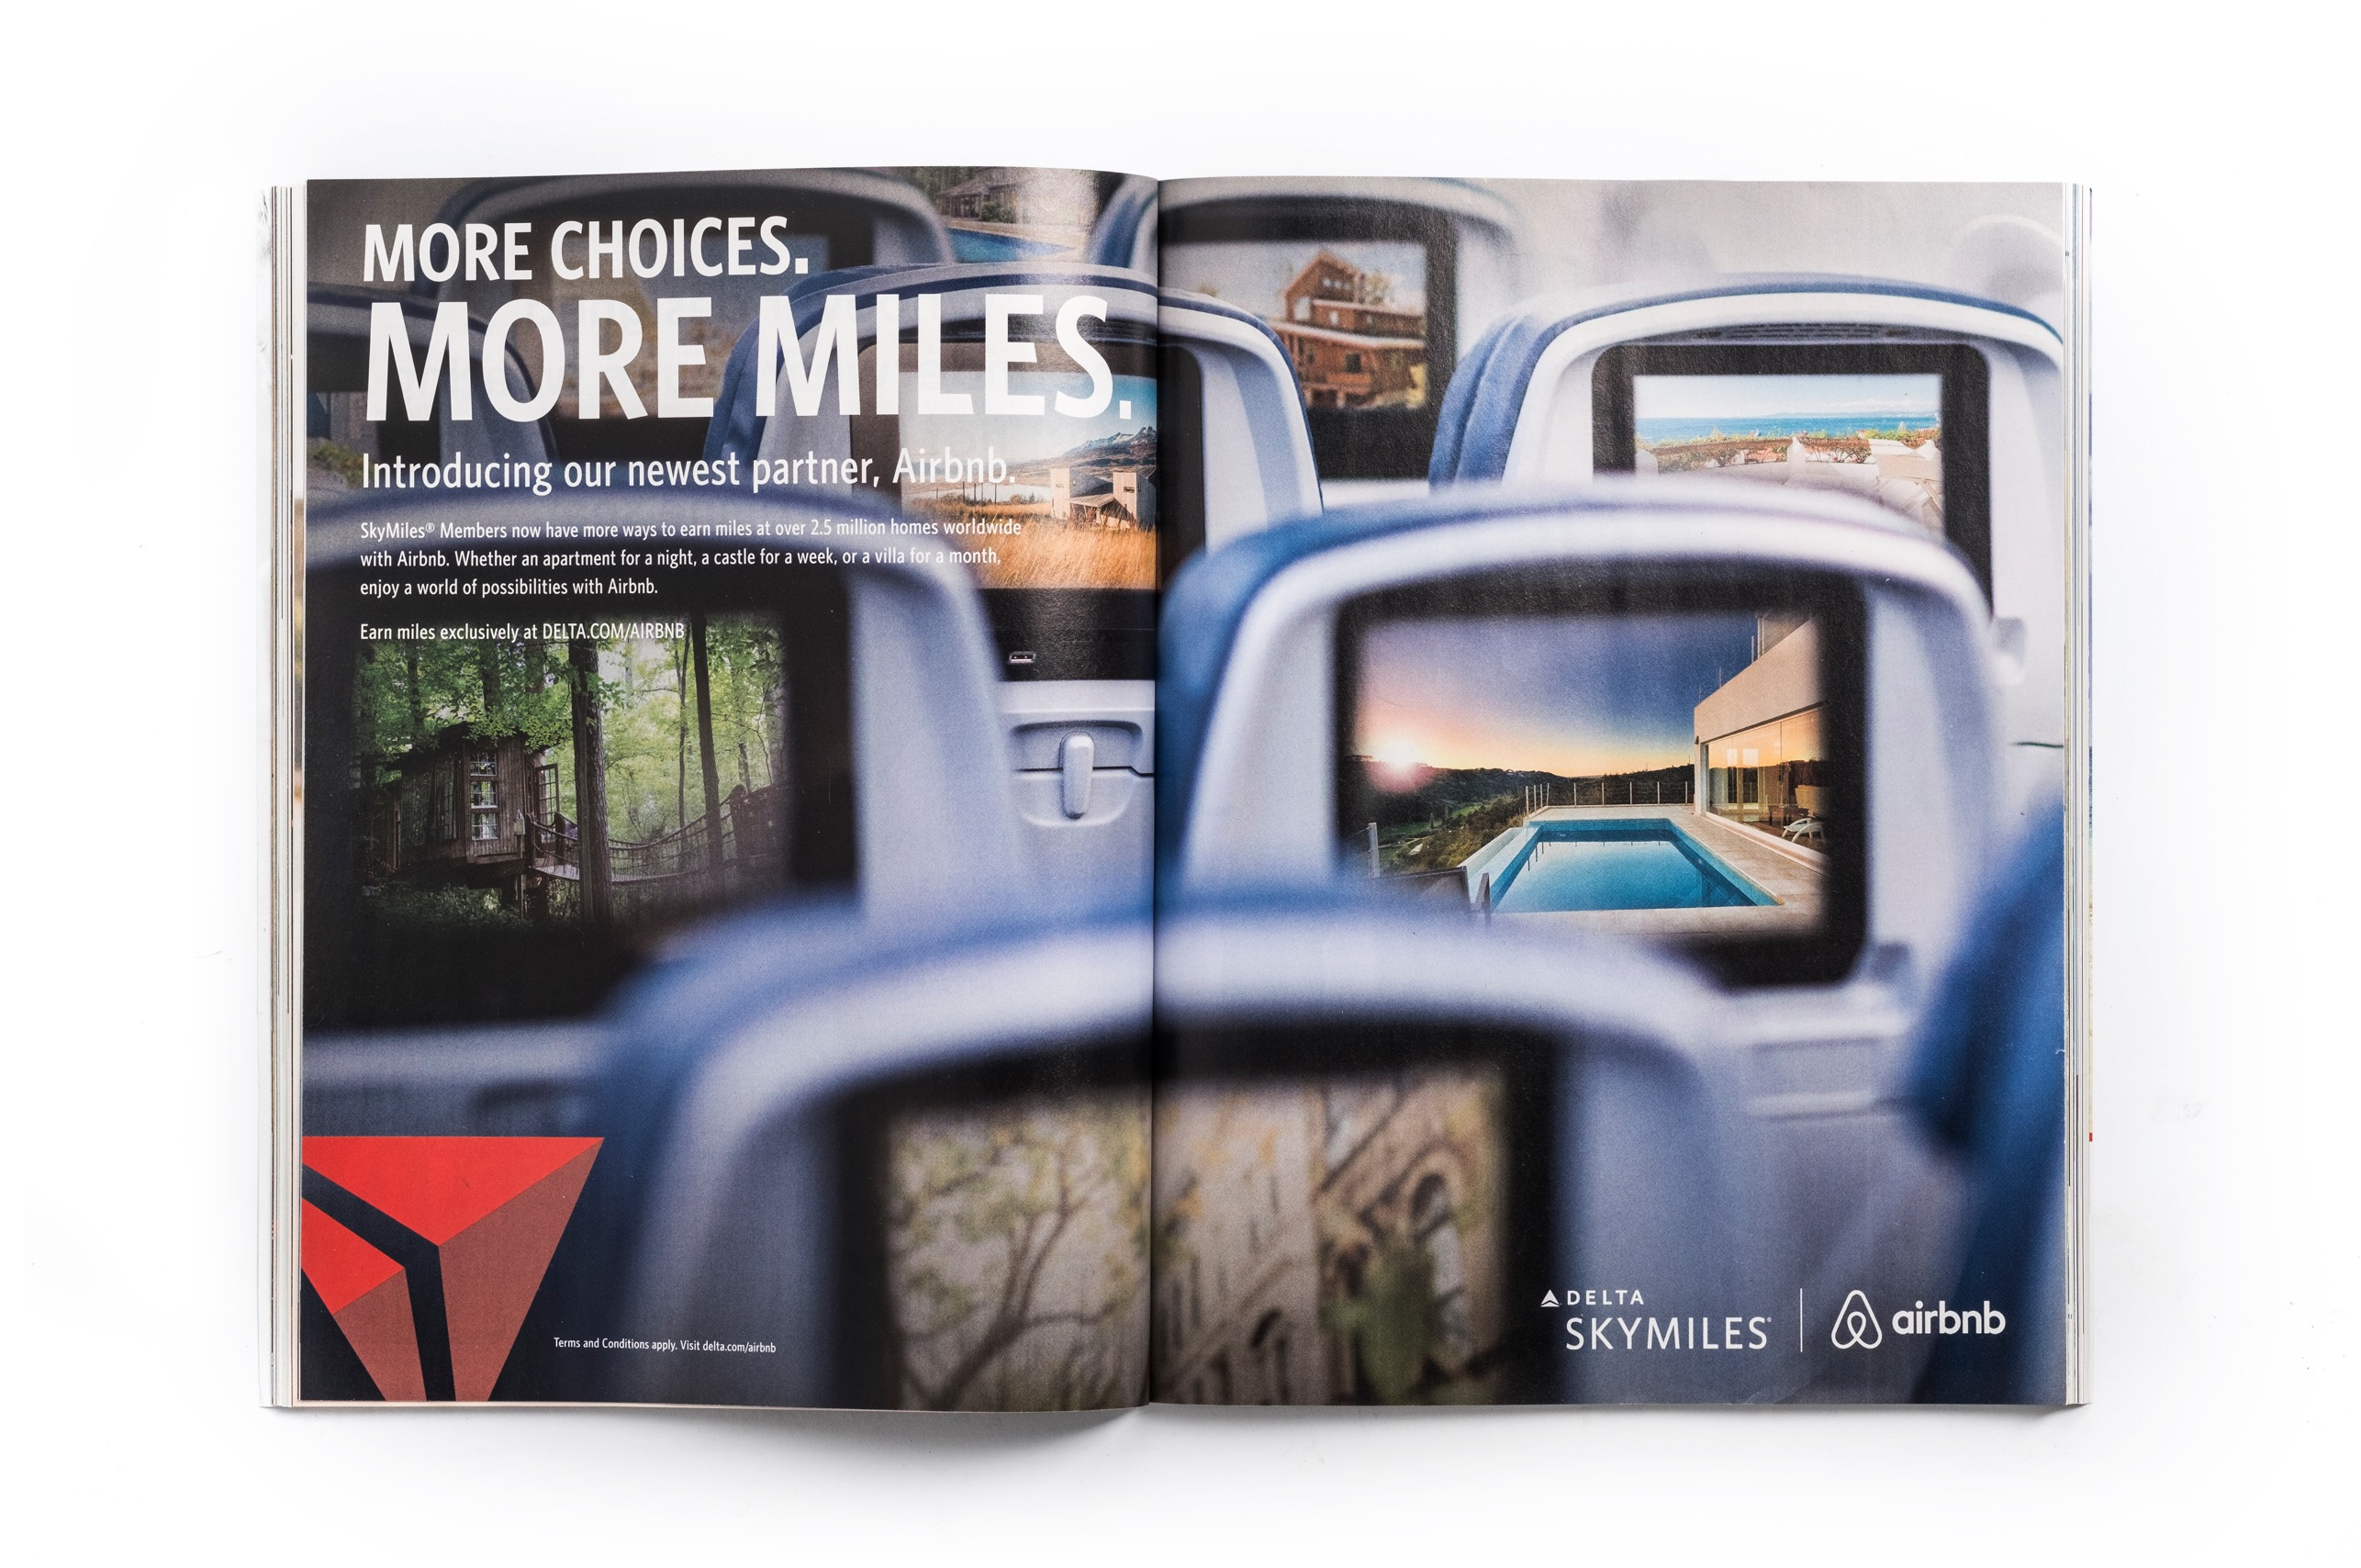 Jackson Spalding - Delta Air Lines, Multi-channel marketing, Mobile Application, Magazine